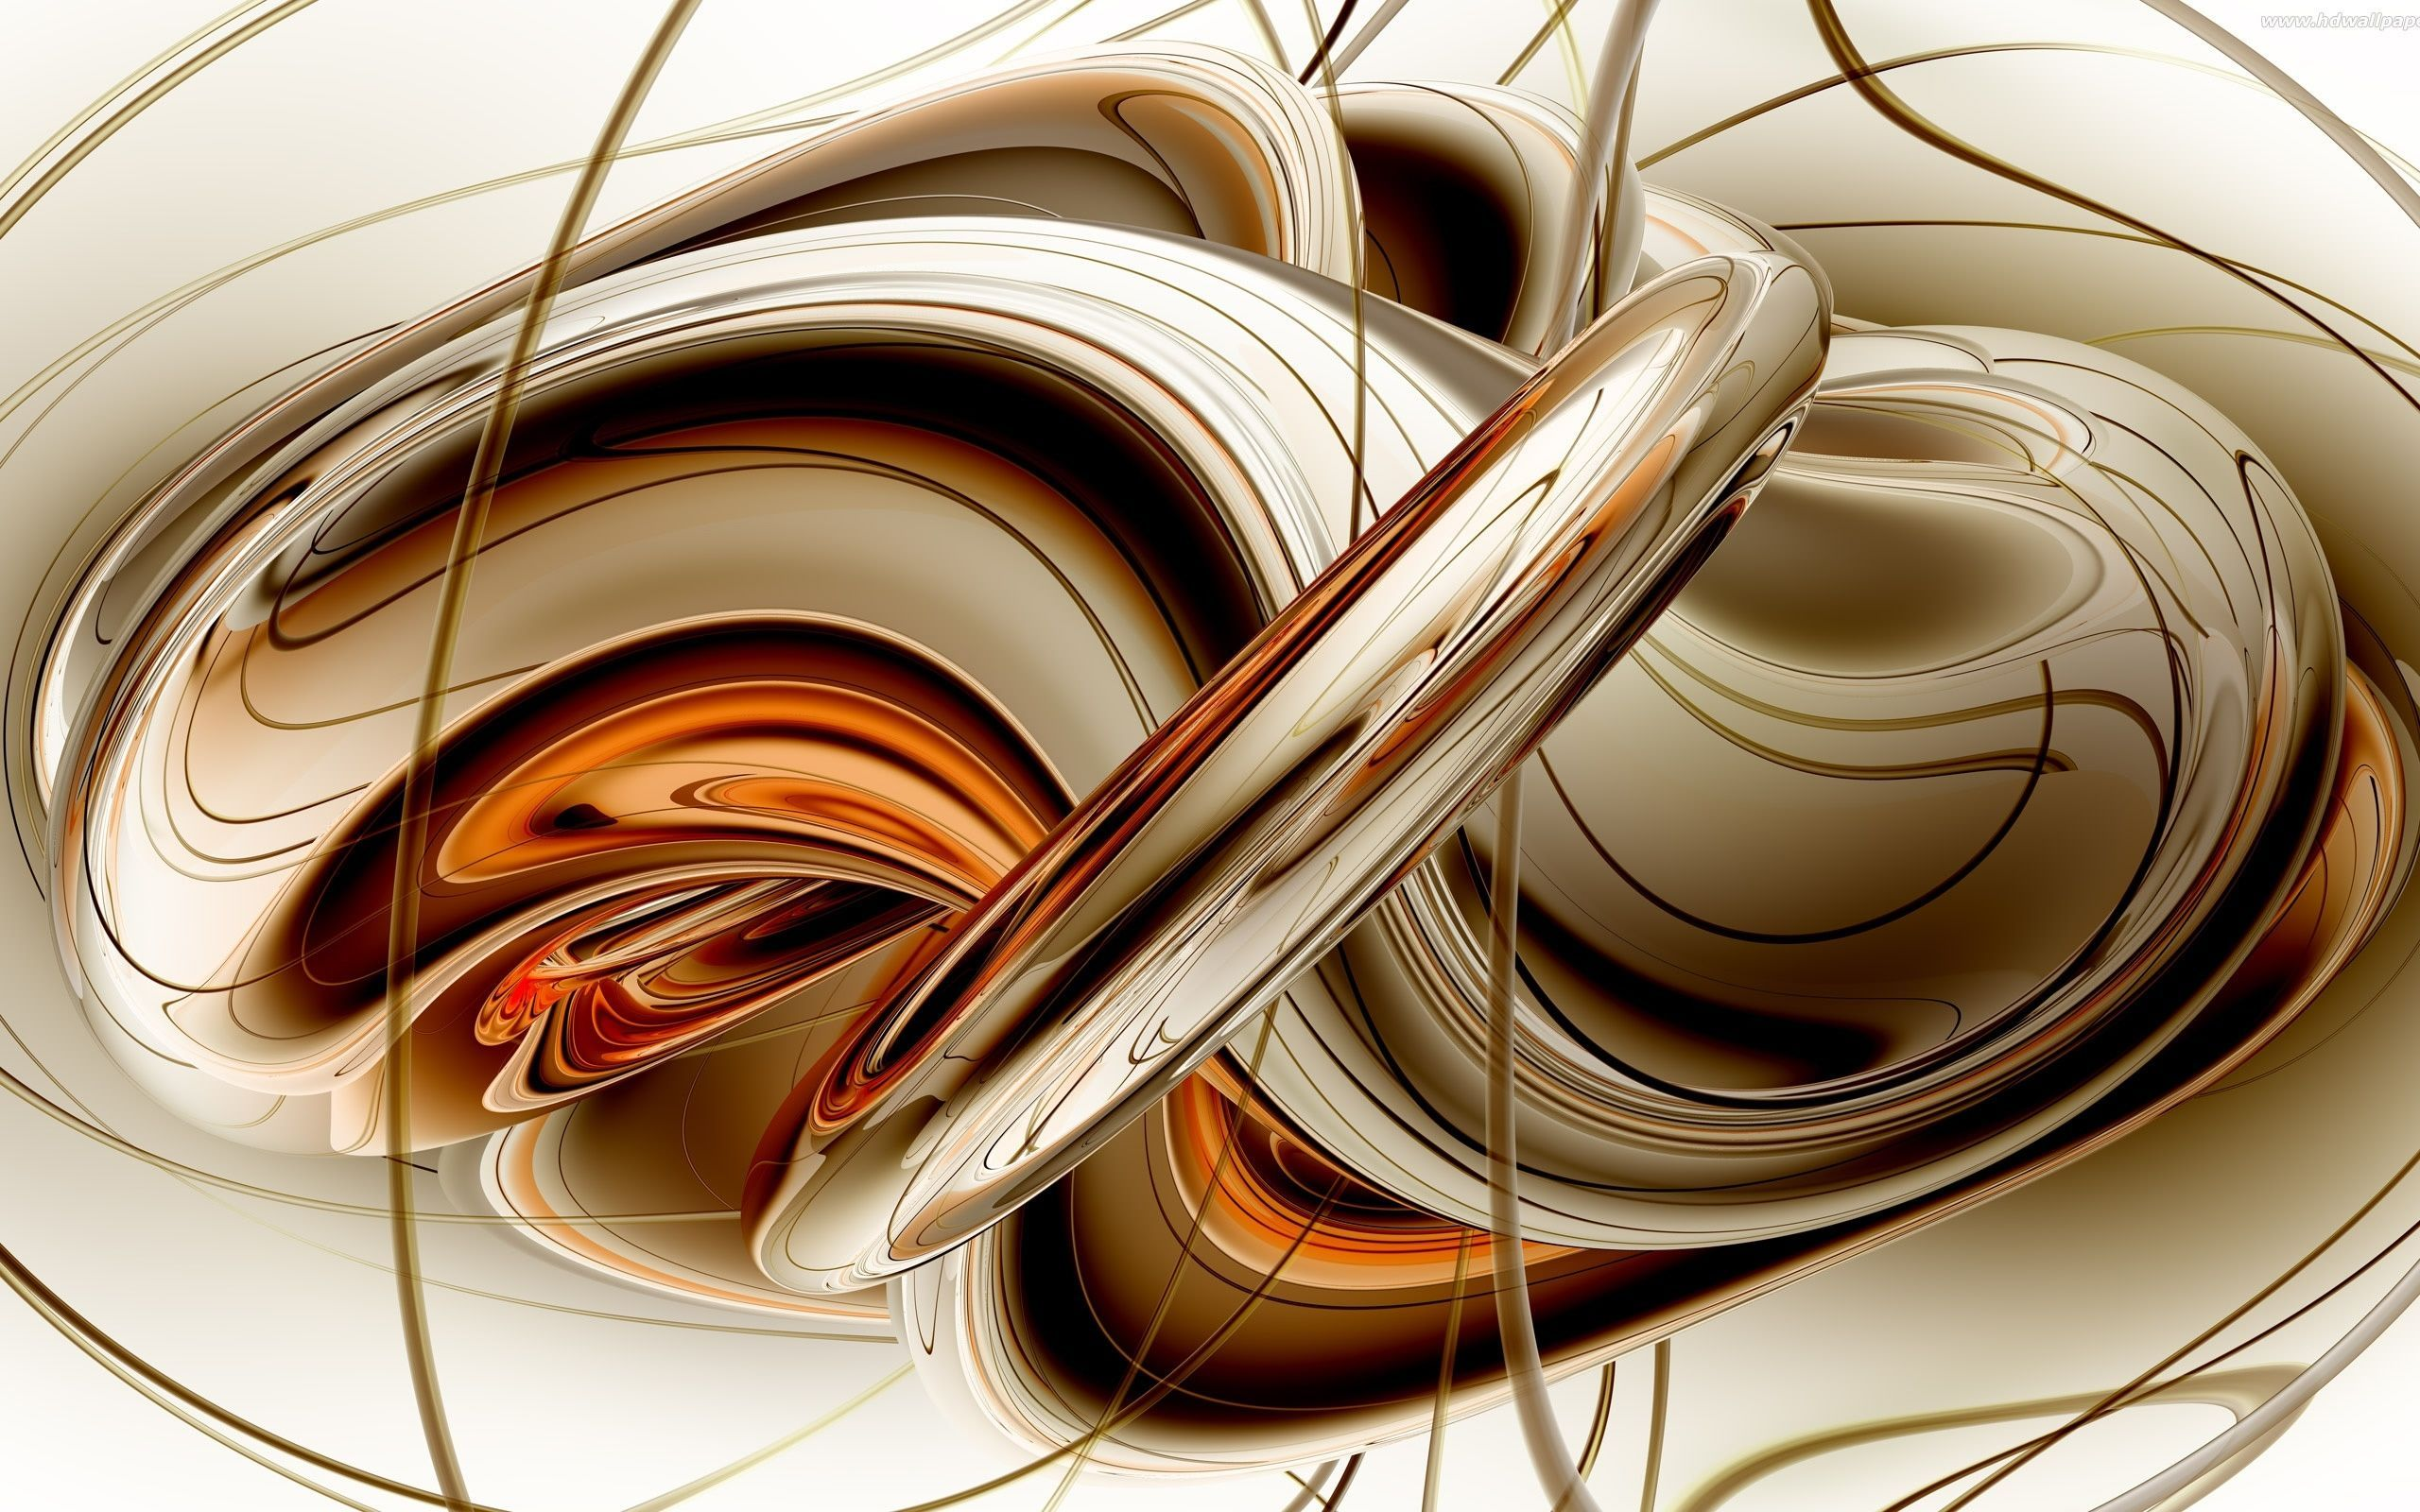 #3D #Abstract #fullhd #photos #pictures #images for #free #download #3dabstract #abstractin3d